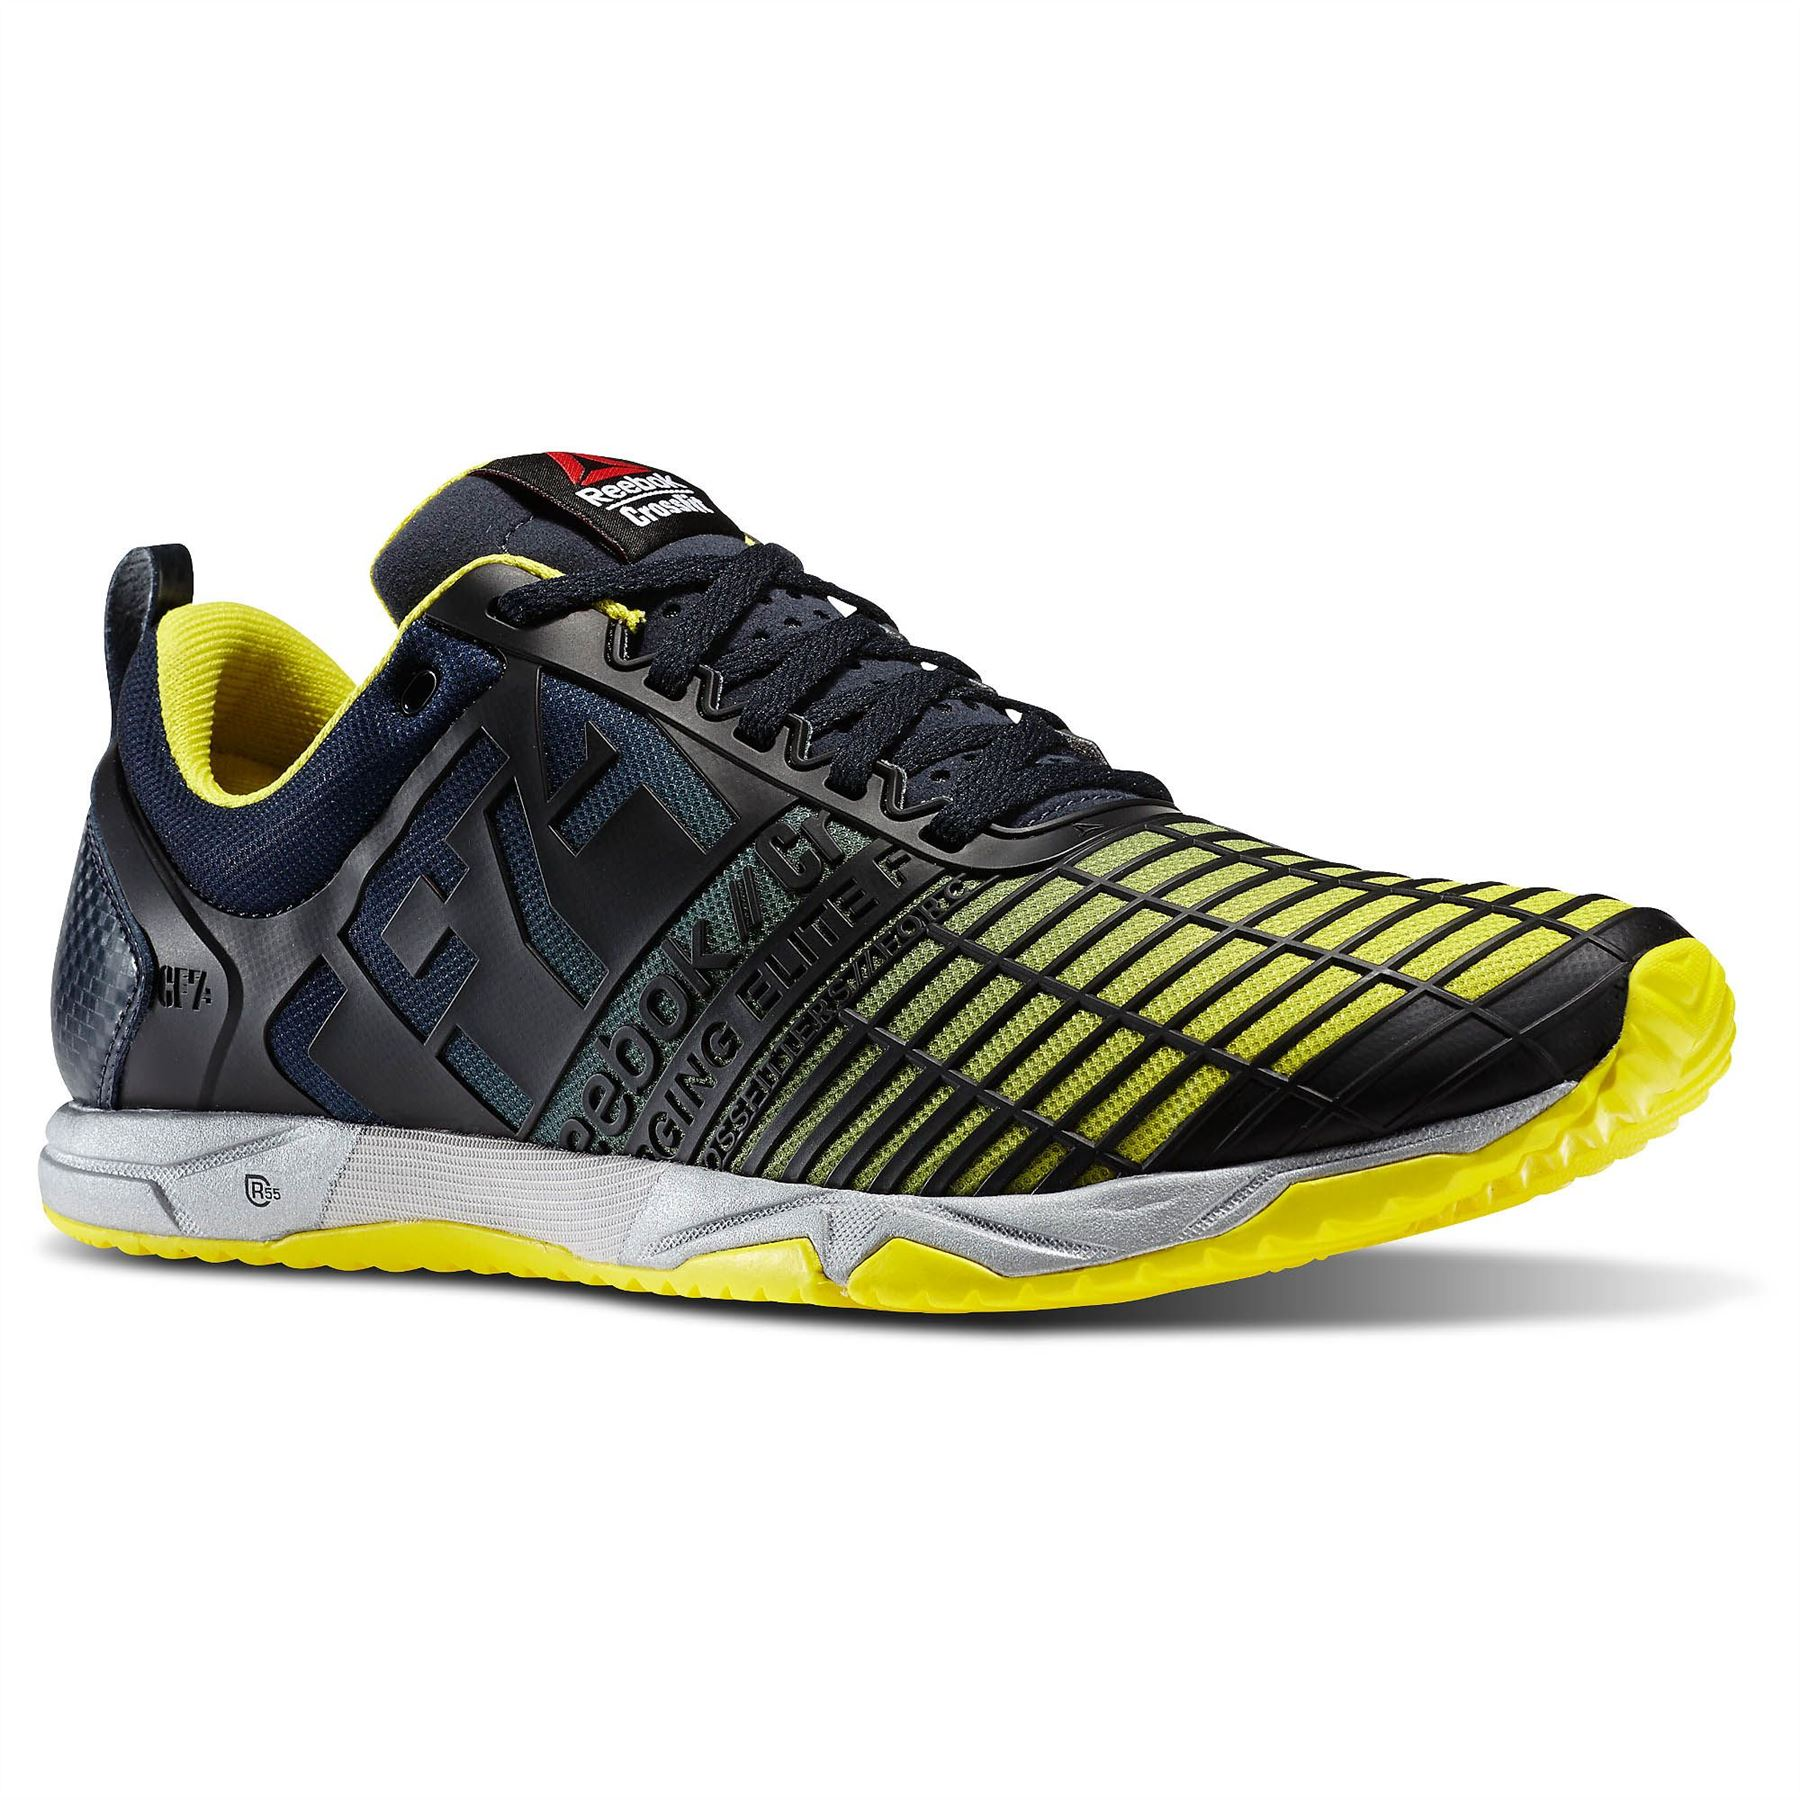 7290c365062 Details about Reebok Crossfit Sprint TR Training Shoes Mens Navy Yellow Gym  Trainers Sneakers